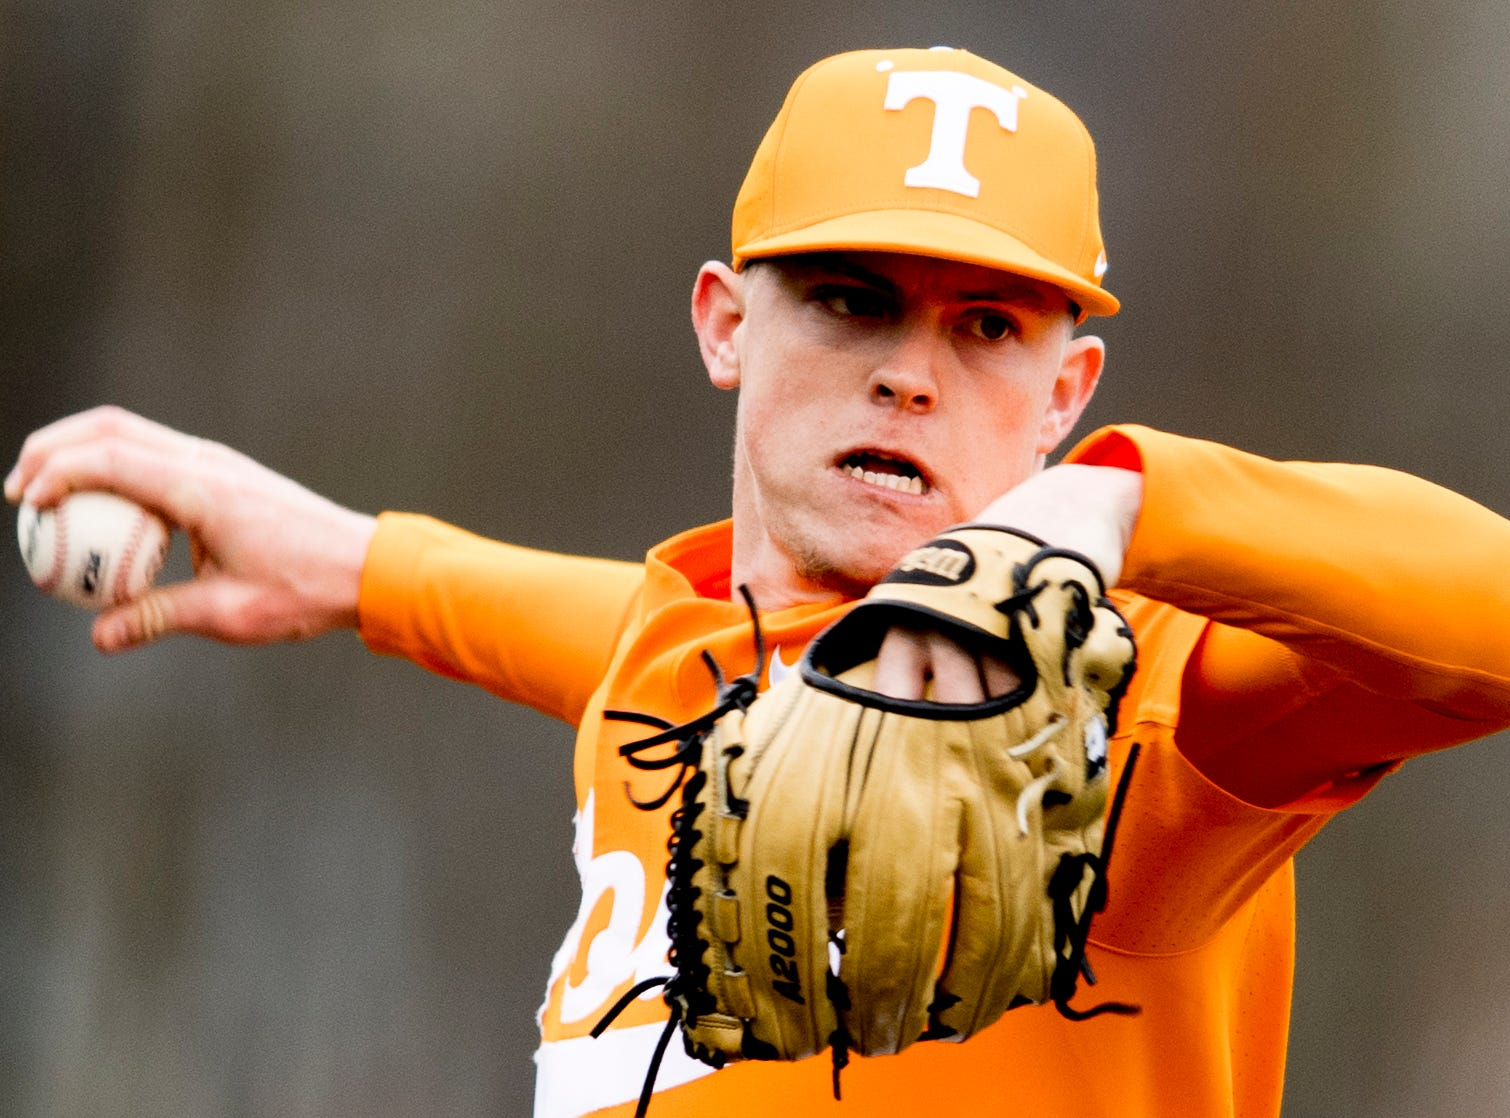 Tennessee pitcher Zach Linginfelter (25) pitches during a Tennessee baseball home opener game against Appalachian State at Lindsey Nelson Stadium in Knoxville, Tennessee on Saturday, February 16, 2019.